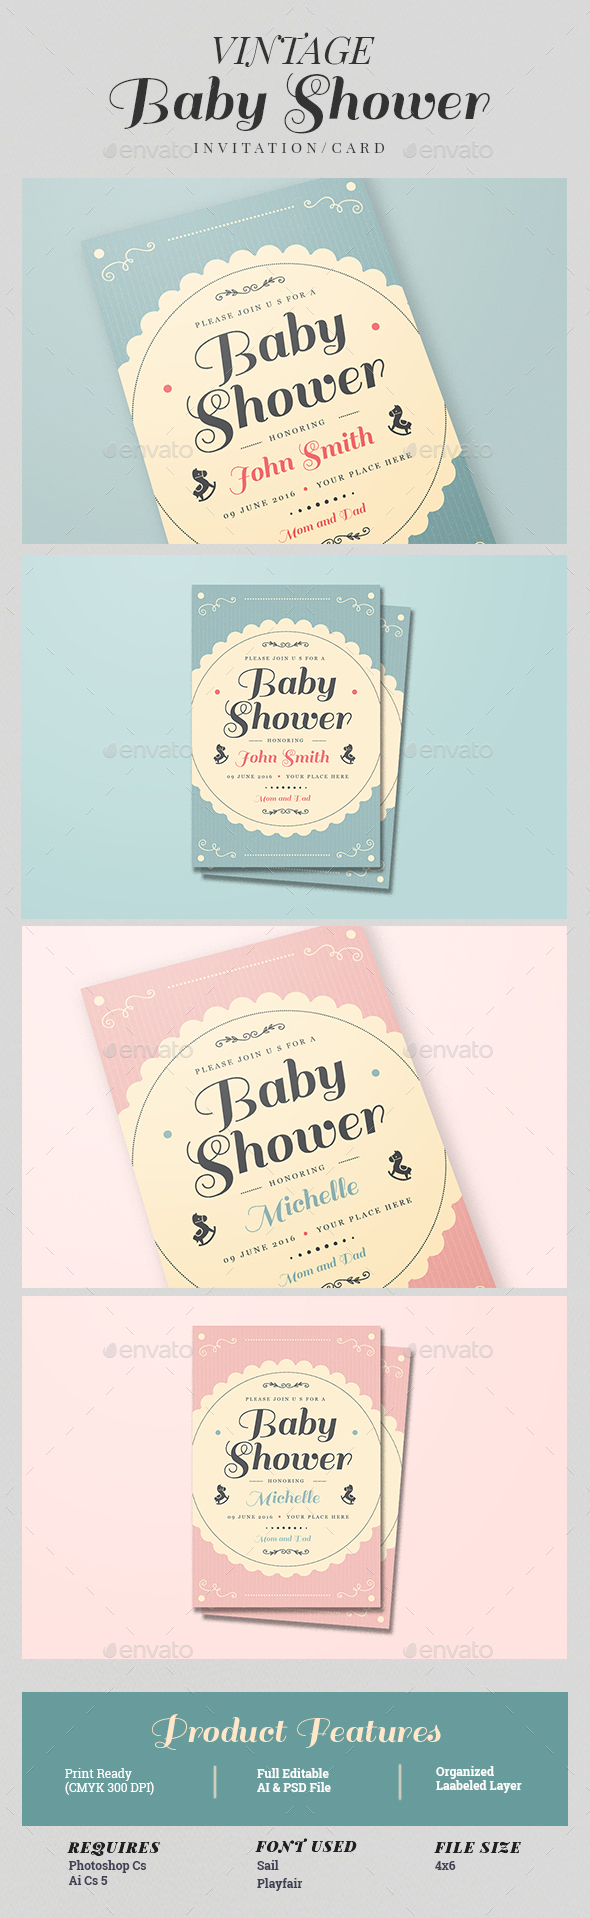 Vintage Baby Shower Invitation/Card by Guuver | GraphicRiver